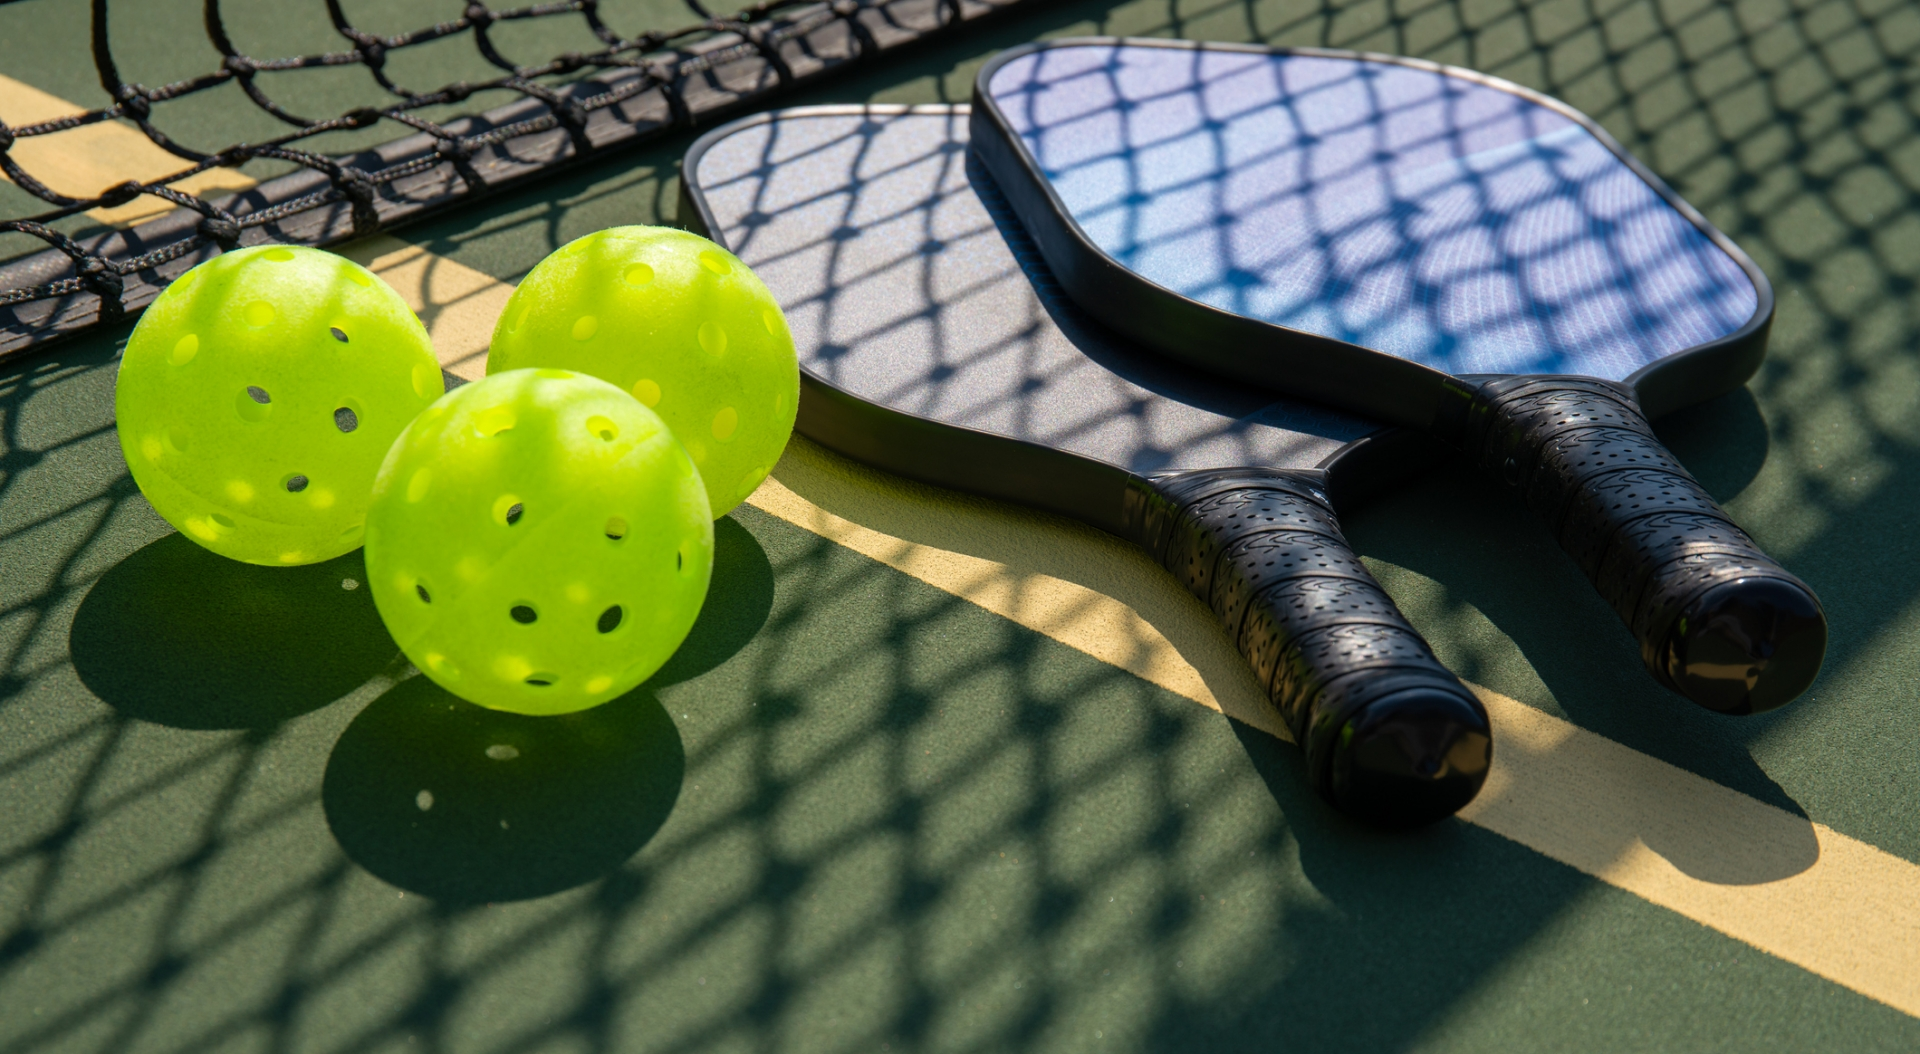 Pickleball paddles and balls on a court